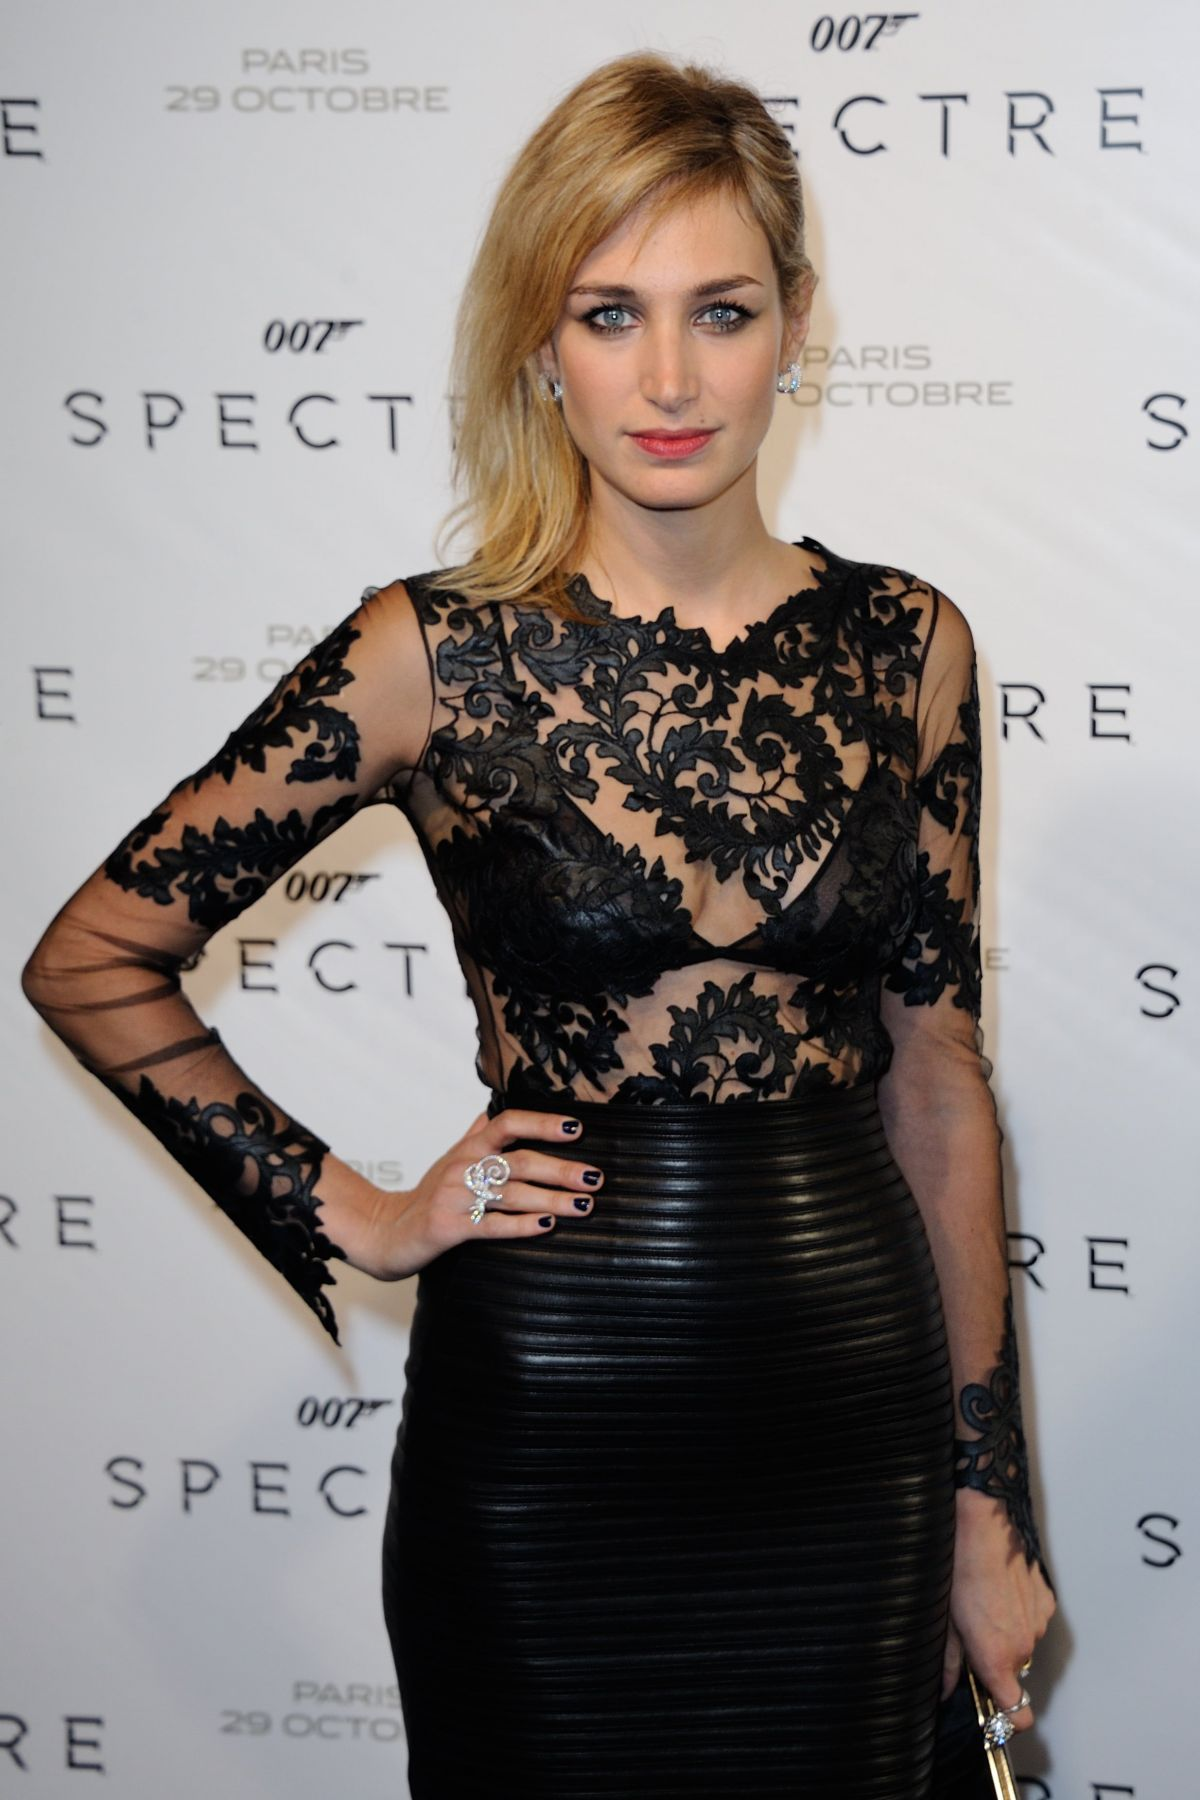 PAULINE LEFEVRE at Spectre Premiere in Paris 10/29/2015